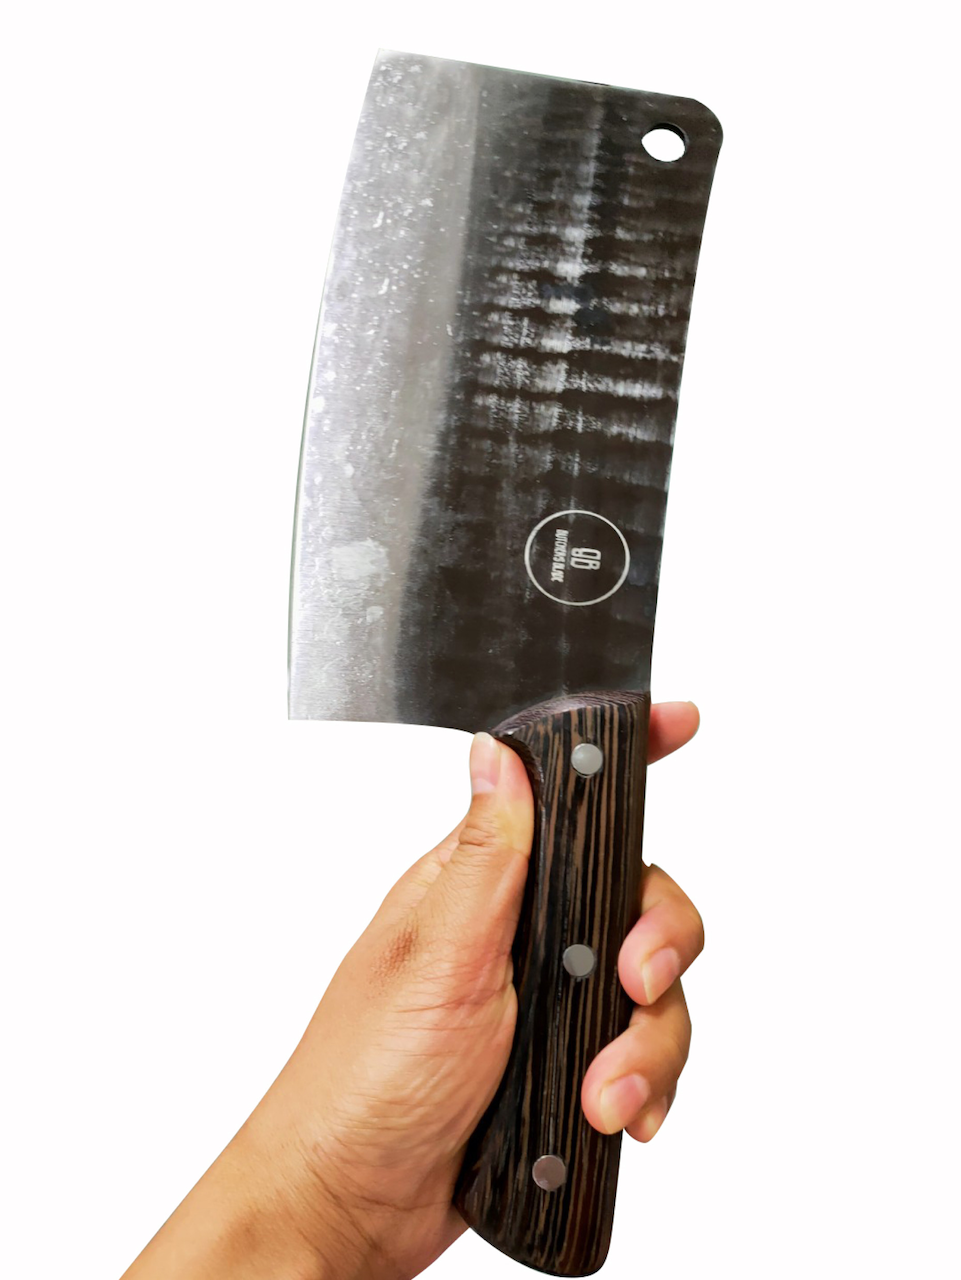 This classic High Carbon Butcher's style cleaver is big and solid knife that can chop or cut just about anything you can thow at it. It is heavy and makes cutting almost anything feel like slicing thru butter. Crooked Butcher